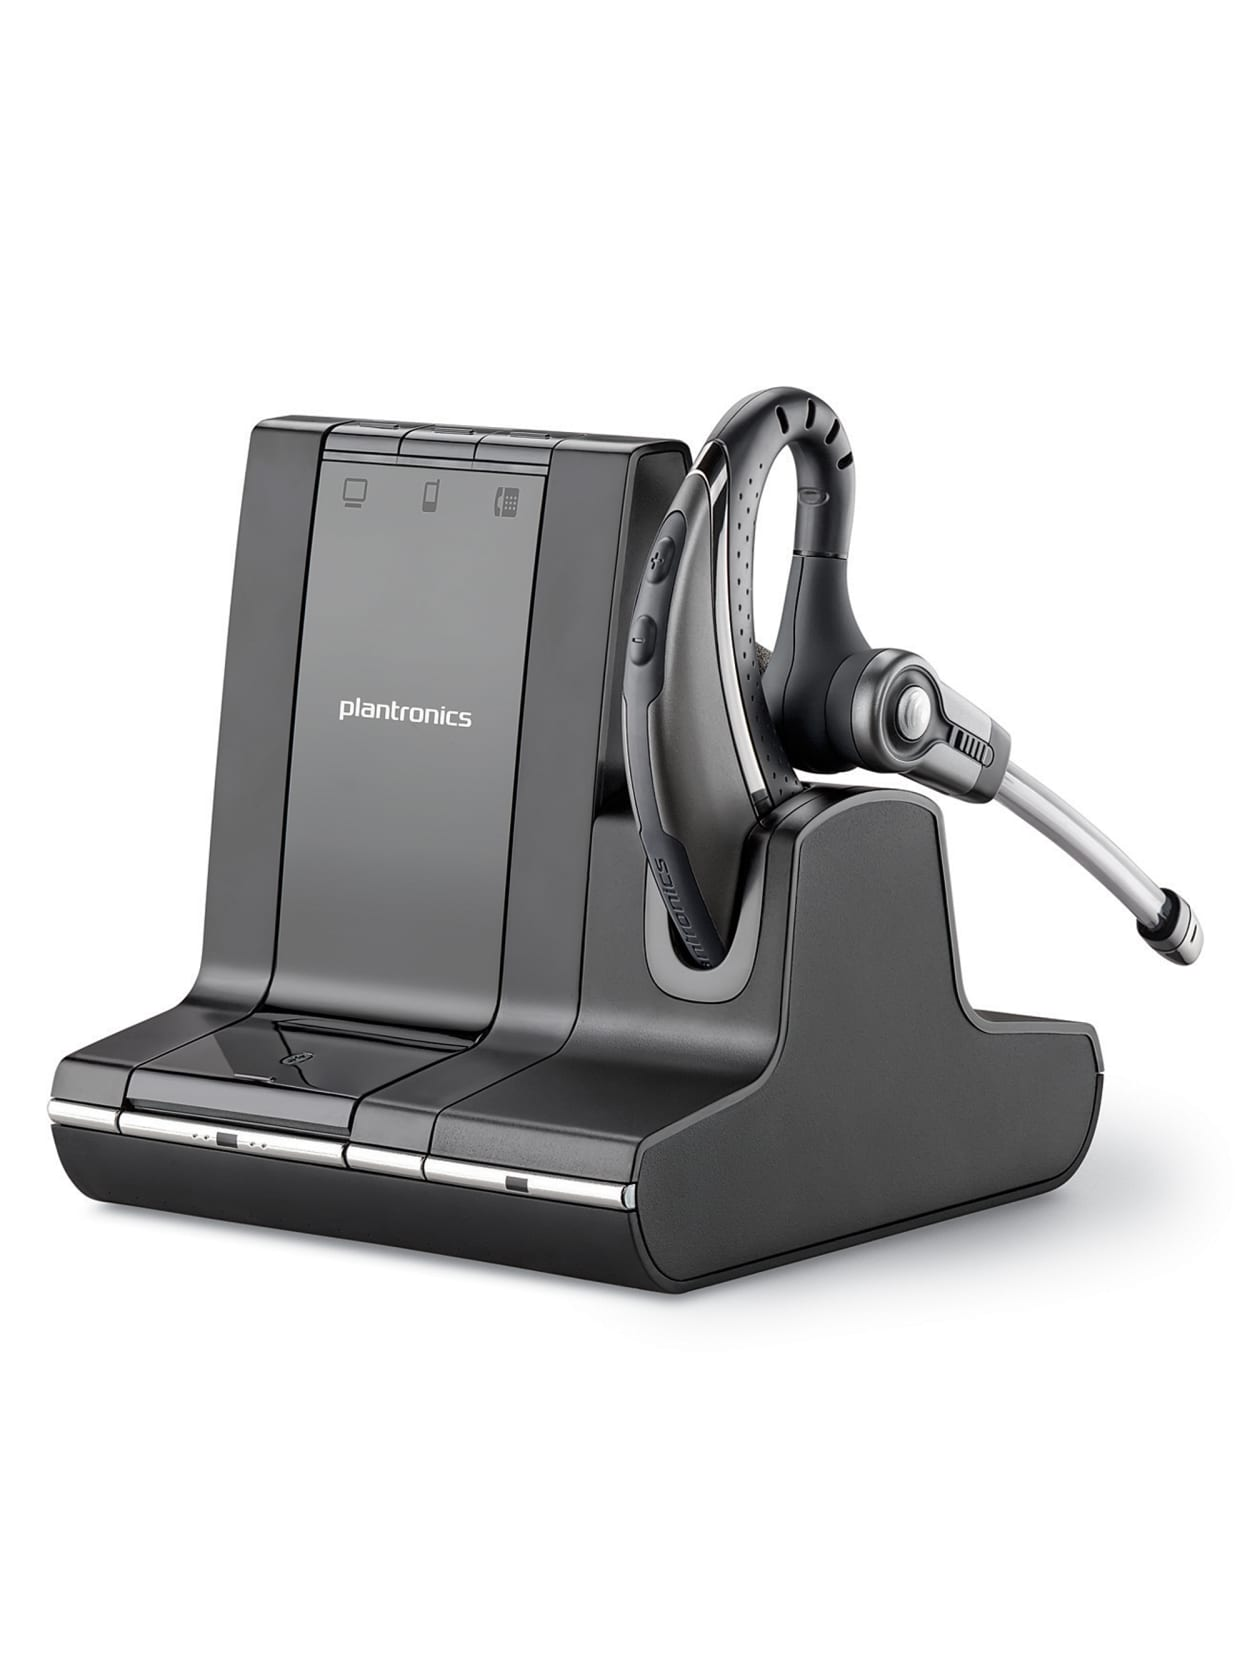 Plantronics Savi 730 Wireless Headset System Blacksilver Office Depot